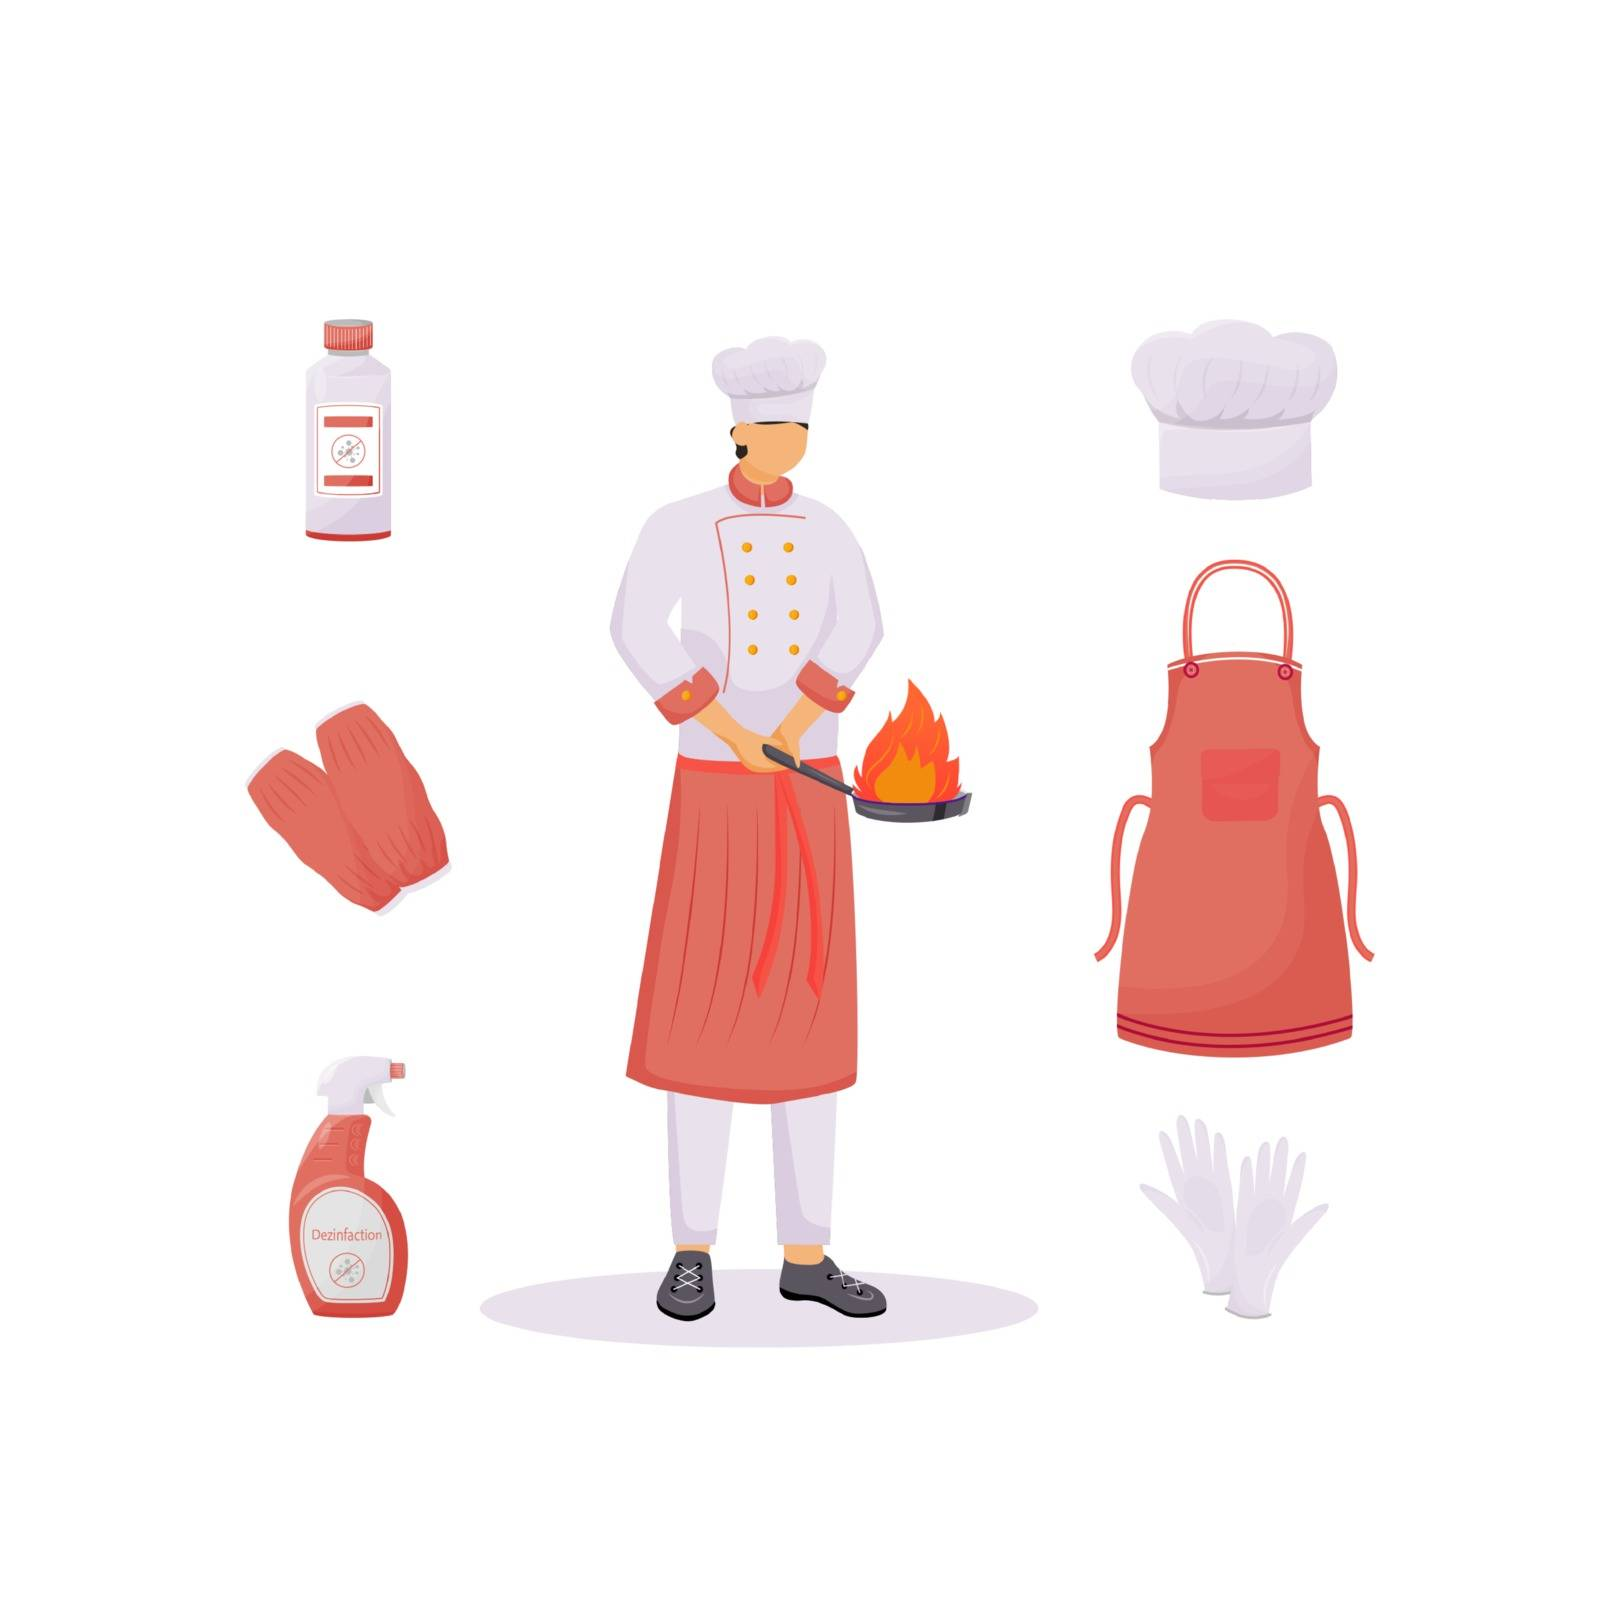 Kitchen clothes flat concept vector illustration. Hat and apron, sleeve protectors and gloves. Cook 2D cartoon character for web design. Healthcare, cleanliness and disinfection creative idea